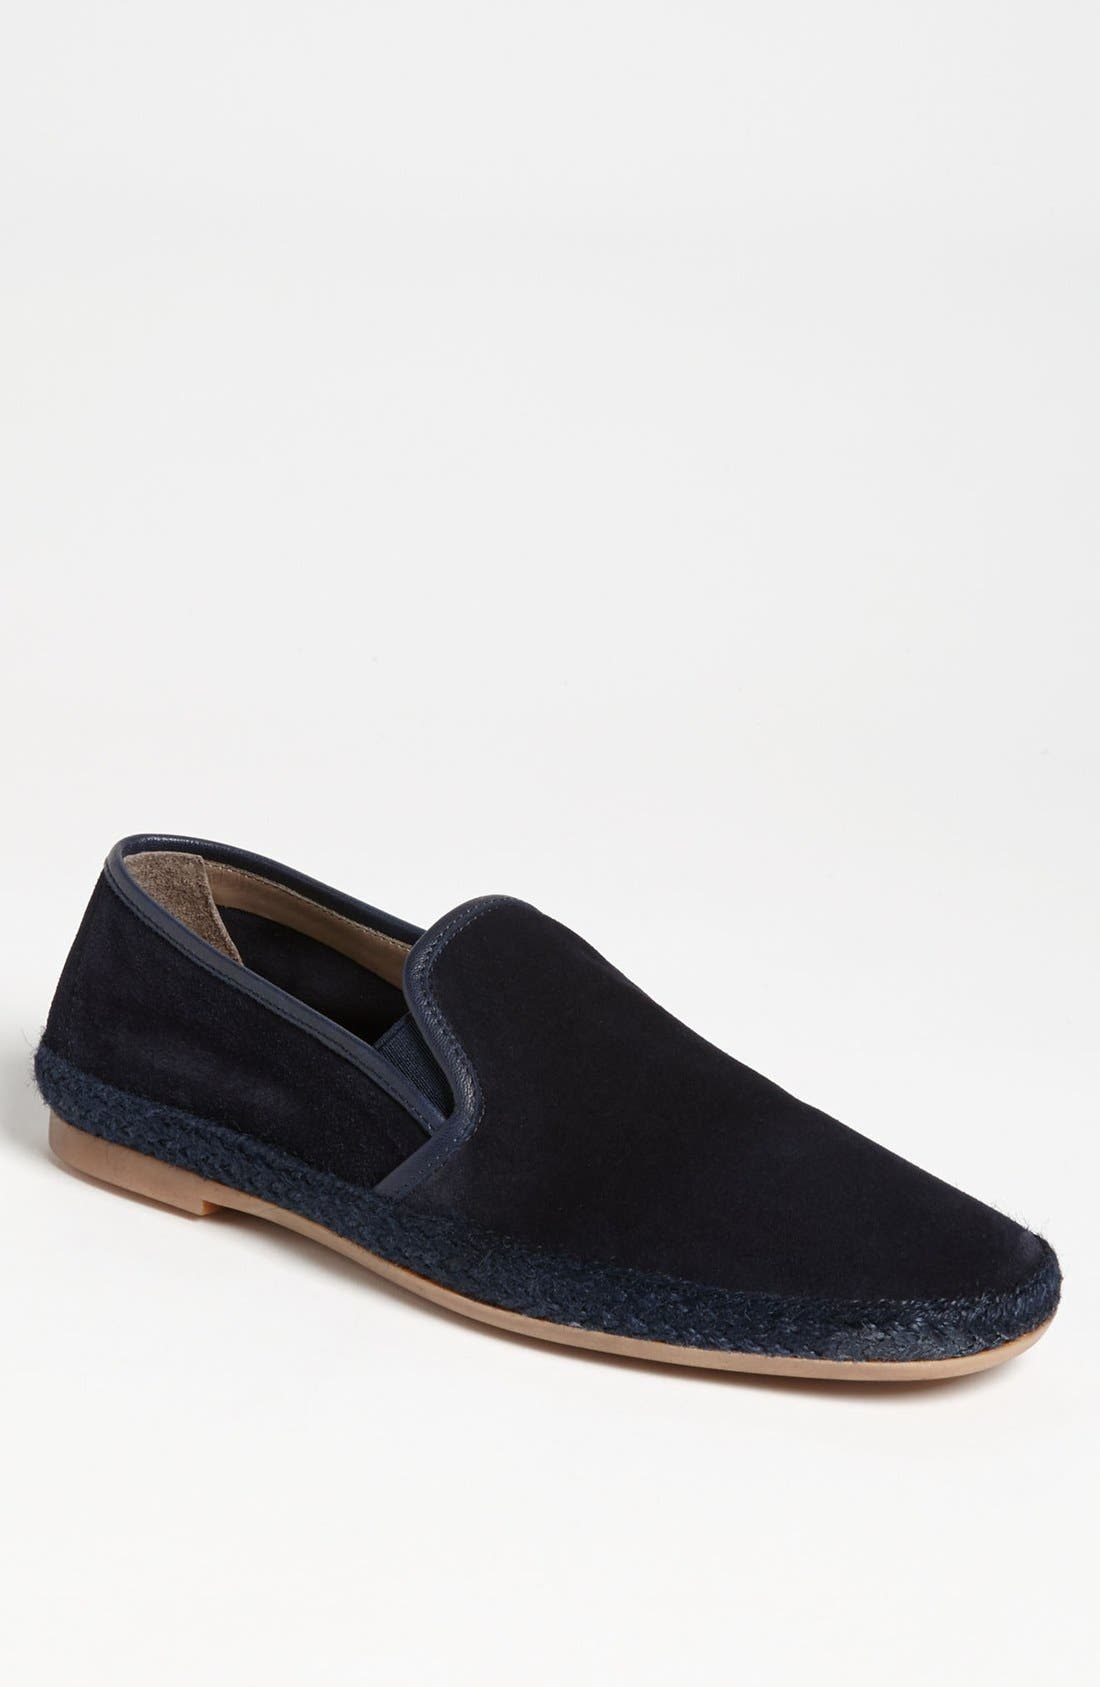 Alternate Image 1 Selected - To Boot New York 'Quentin' Loafer